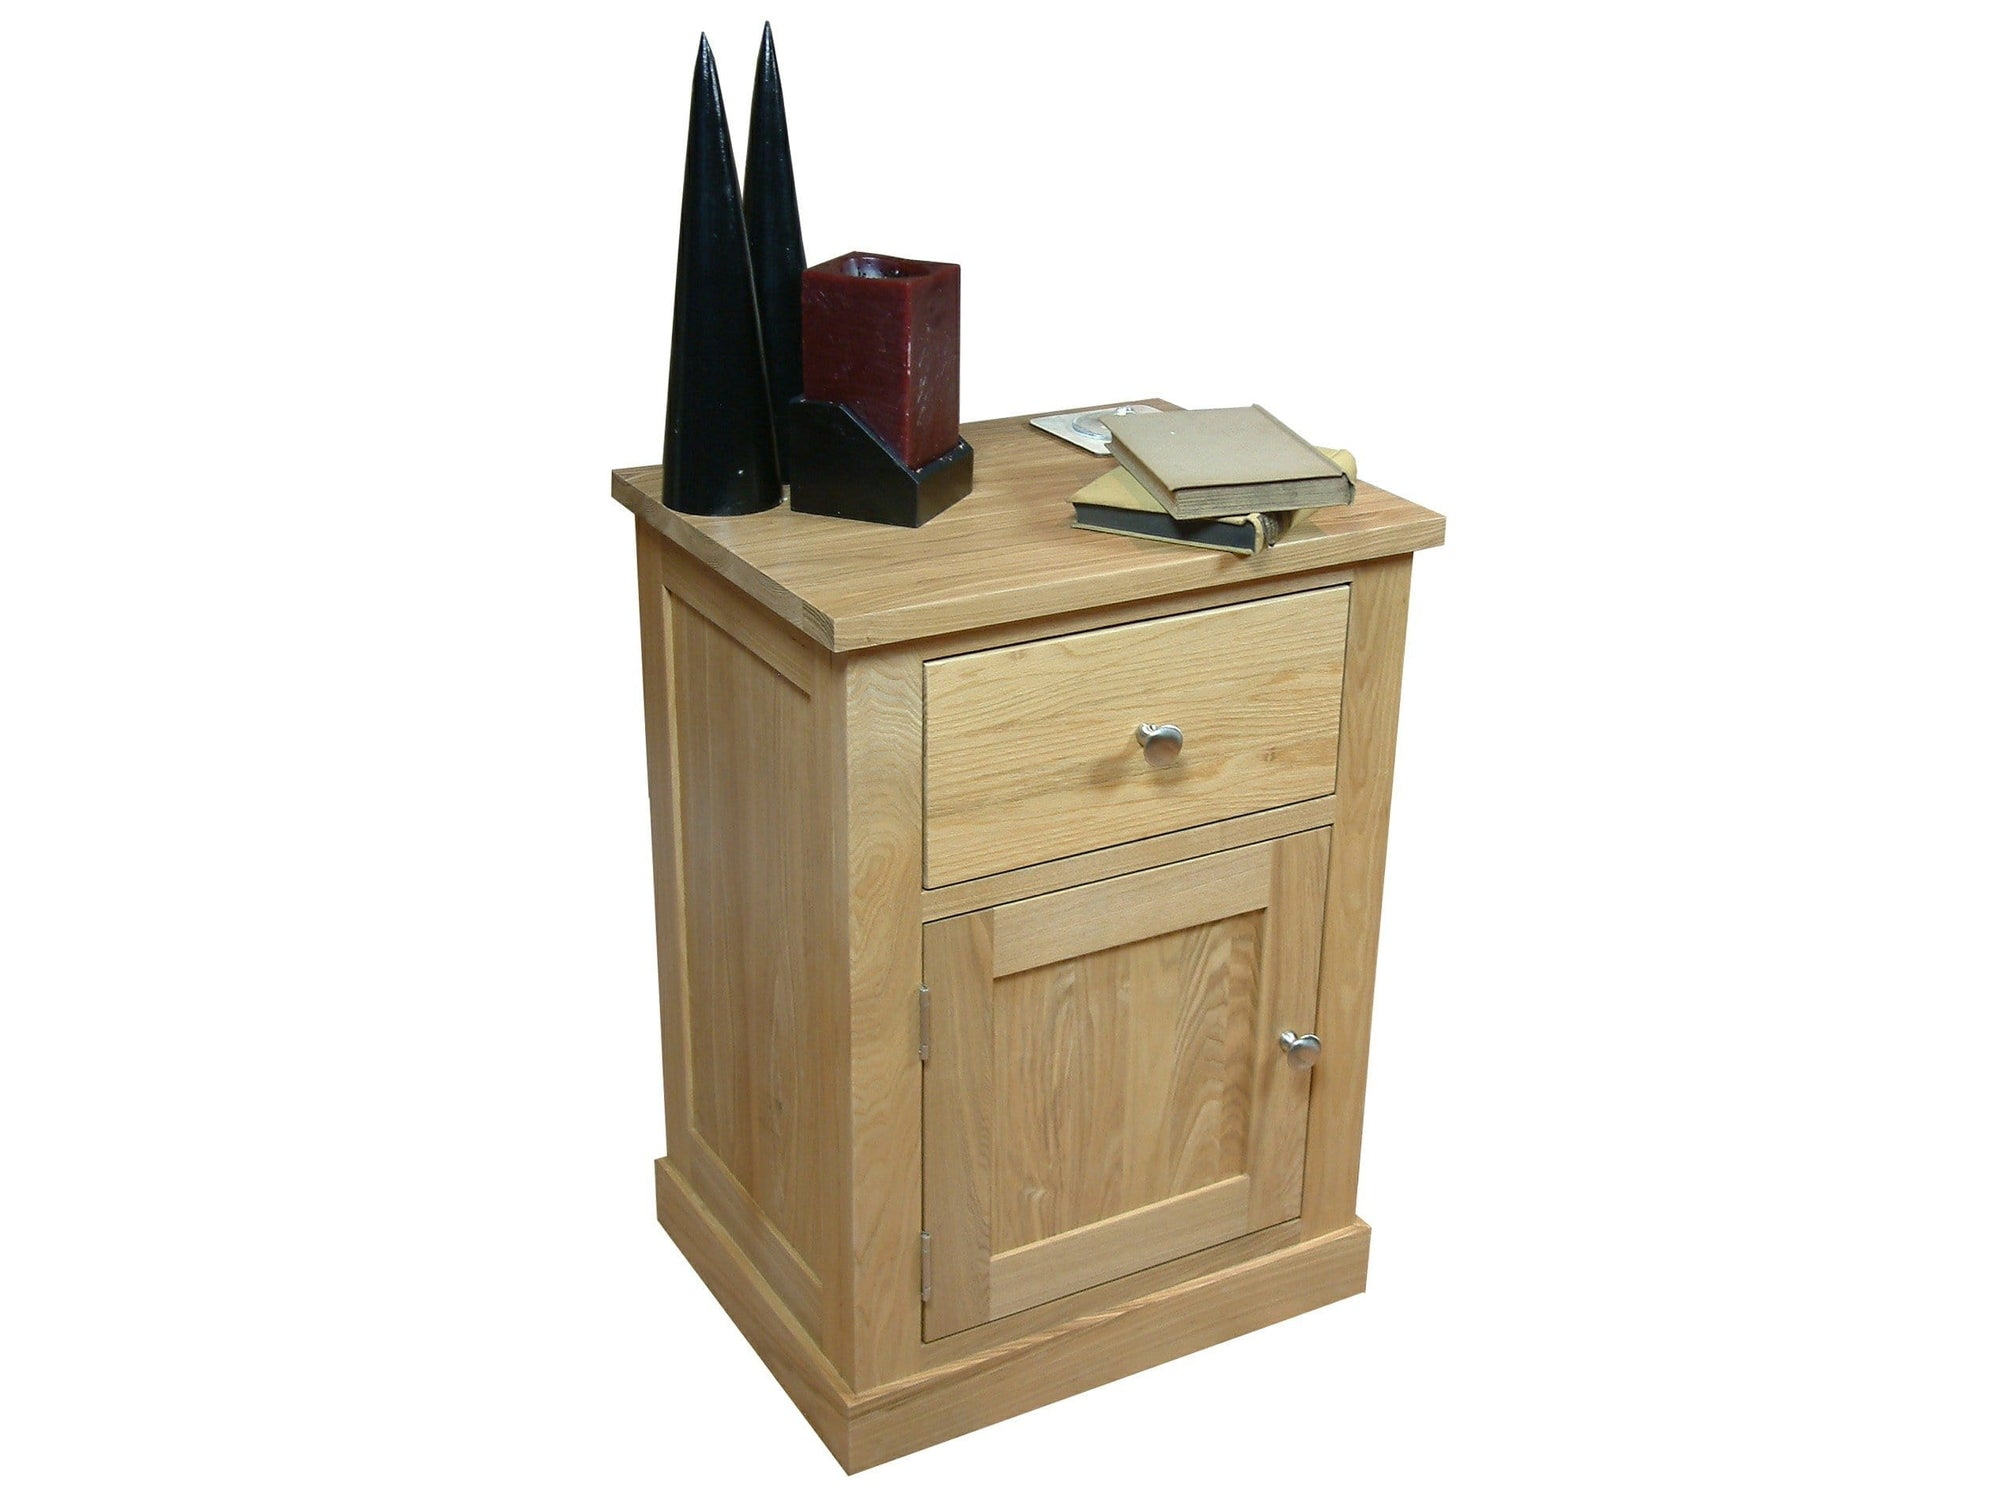 Solid oak side table with top drawer and small storage cupboard